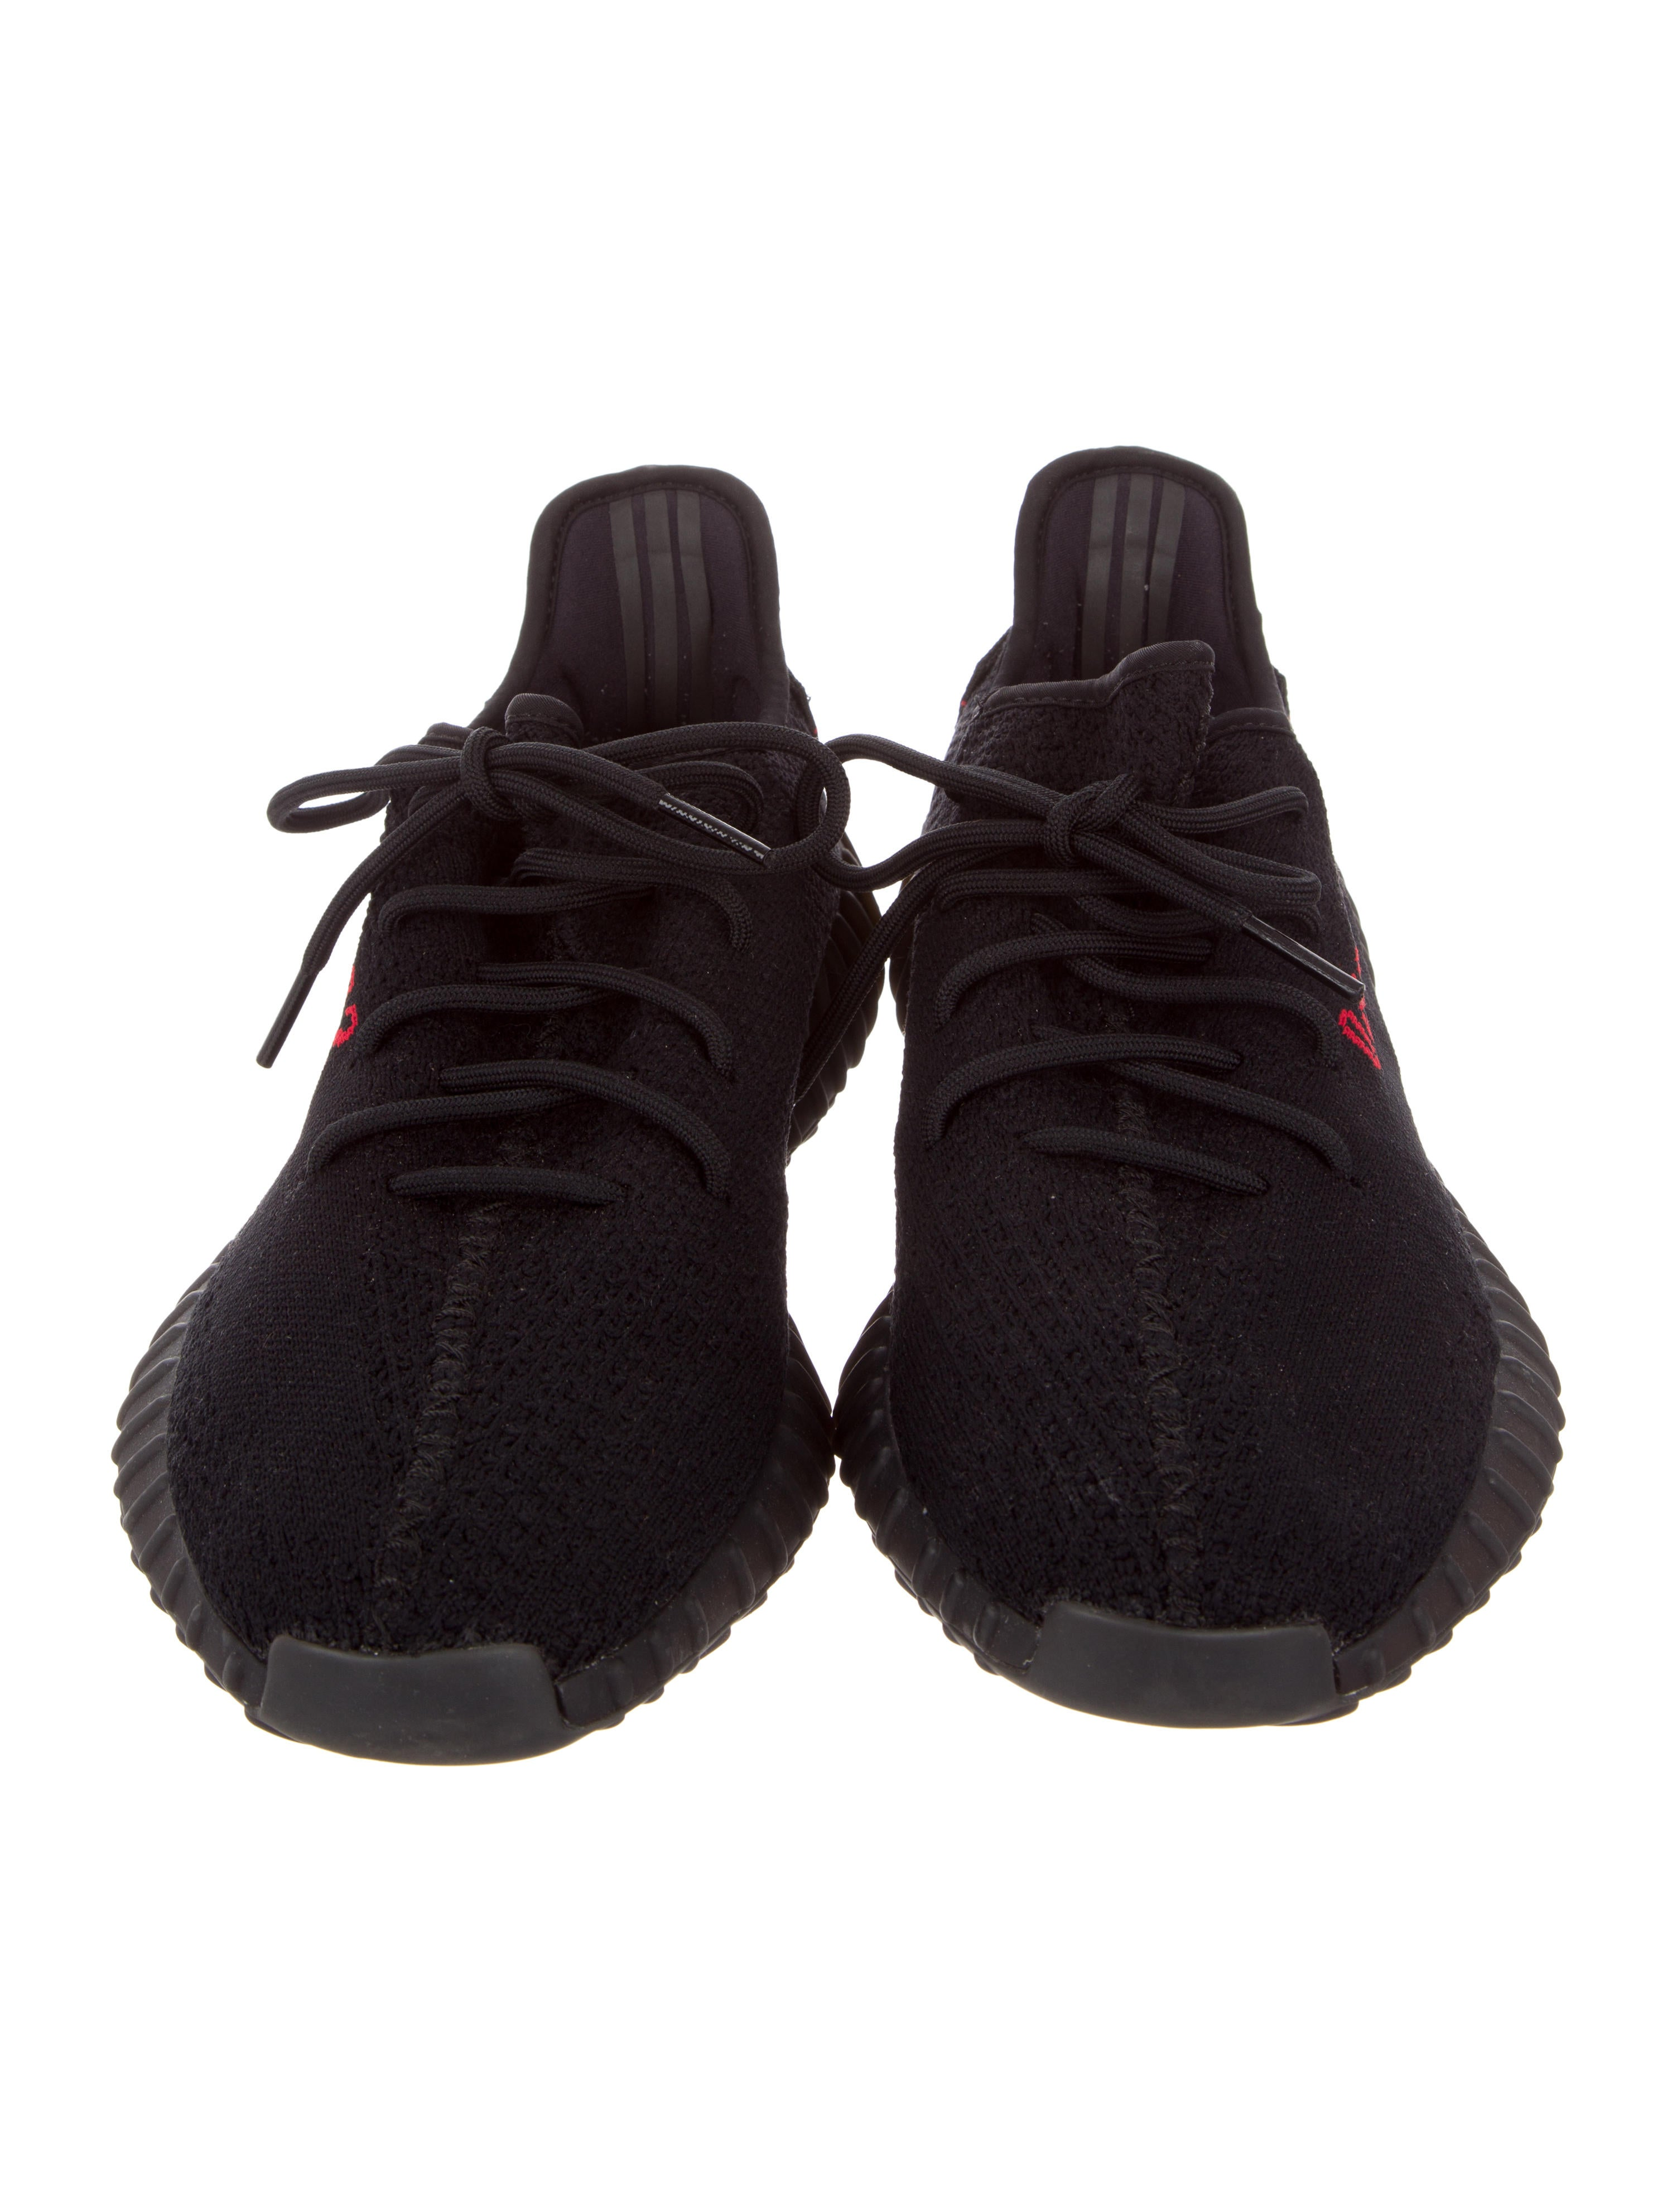 Yeezy x Adidas Boost 350 V2 Sneakers - Shoes - WYEAD20242  The RealReal